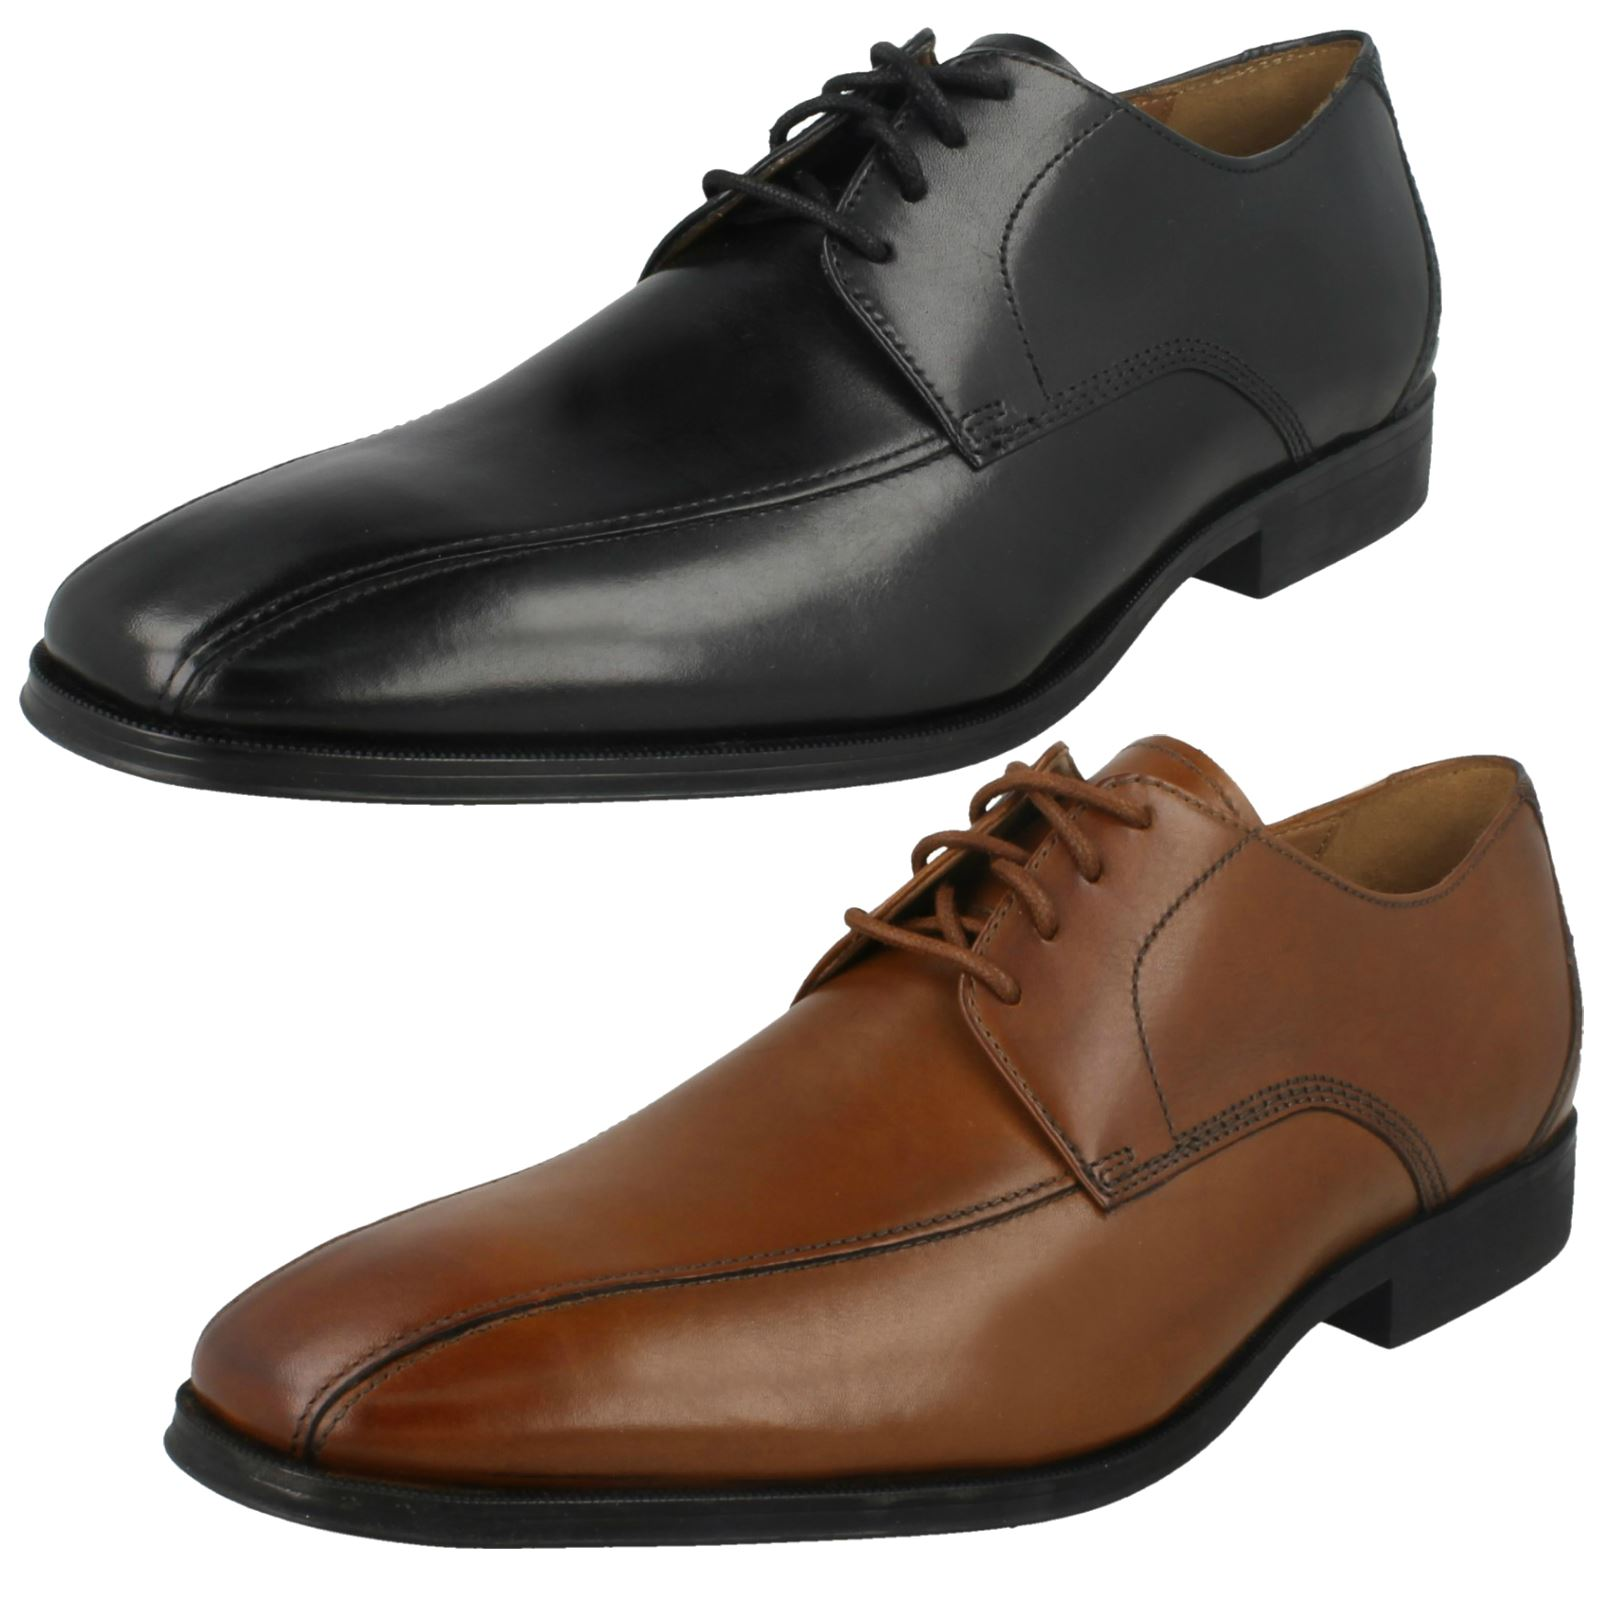 Mens Clarks Formal Lace Up shoes Gilman Mode